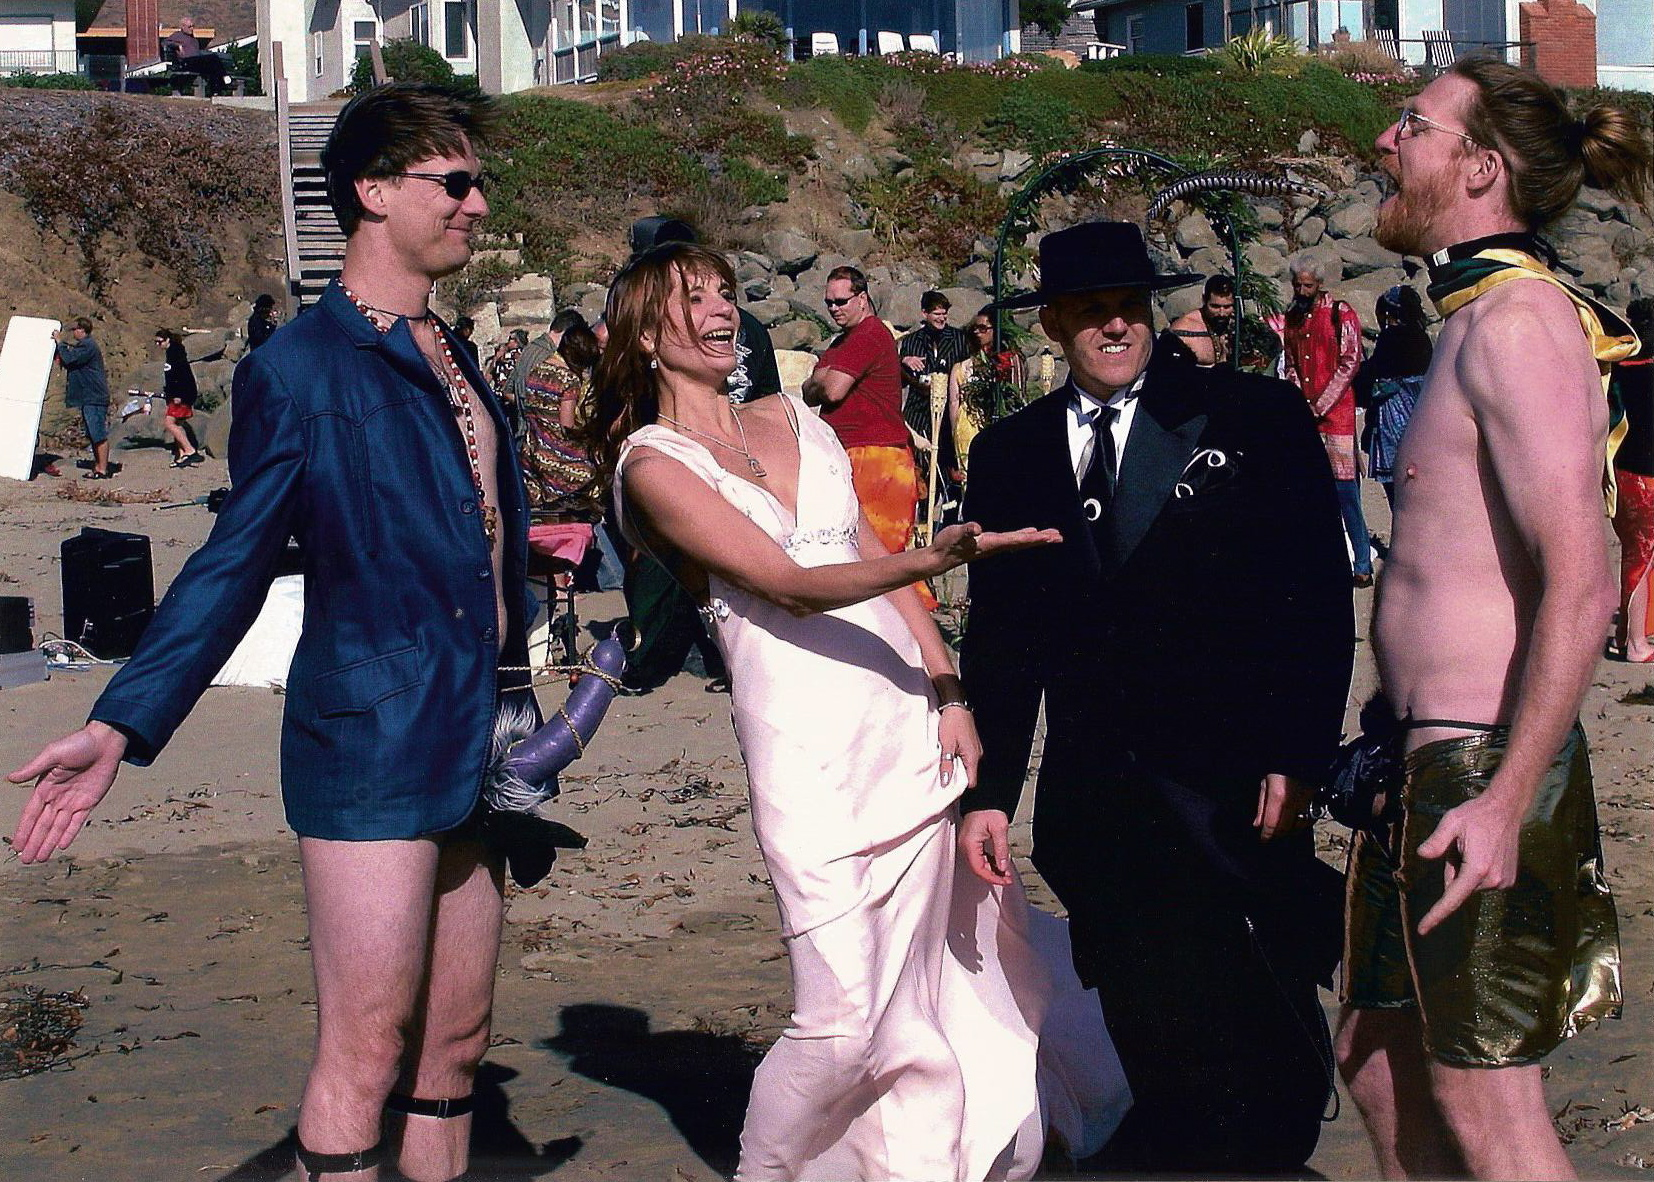 Our wedding, from left :  Moorlock , Mrs. Catharine Winn, yours truly and the late, great Gregorio Redbeard Junell. October 8th, 2005. For the record, co-best man  David Holthouse  can be seen in the background, just to the right of cross-dressed  Robert Kaye  in red (above the tiki torch).